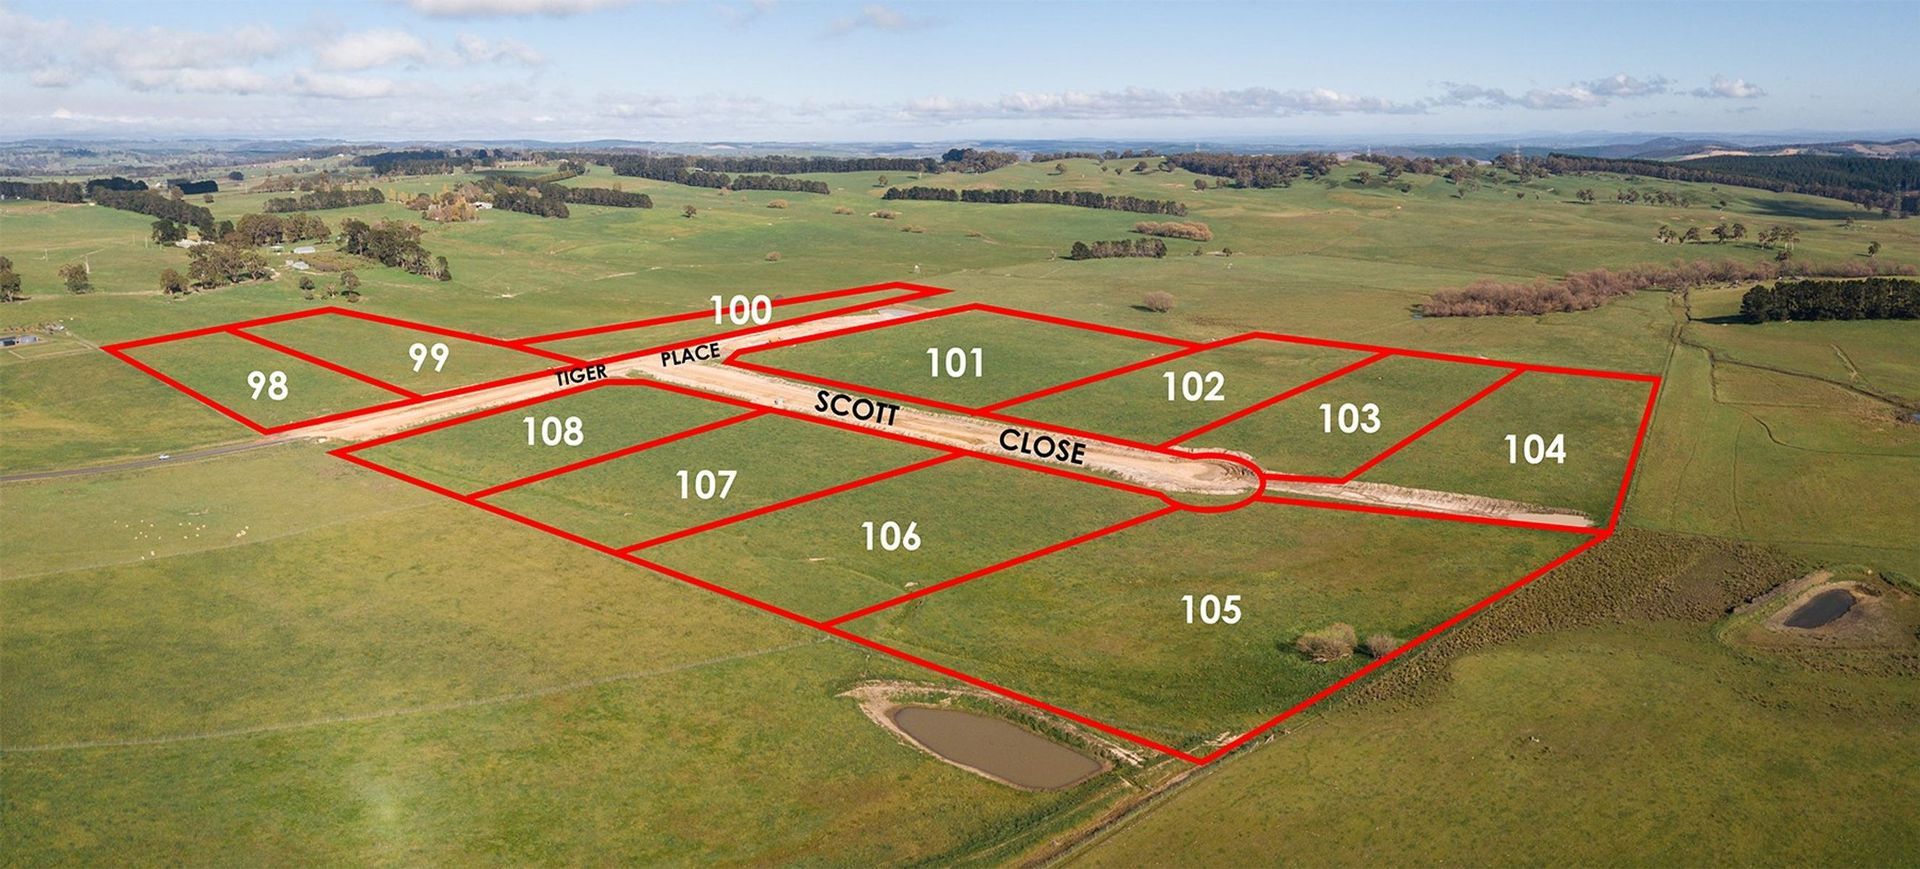 Lot 107 Bracken Estate, Oberon NSW 2787, Image 1